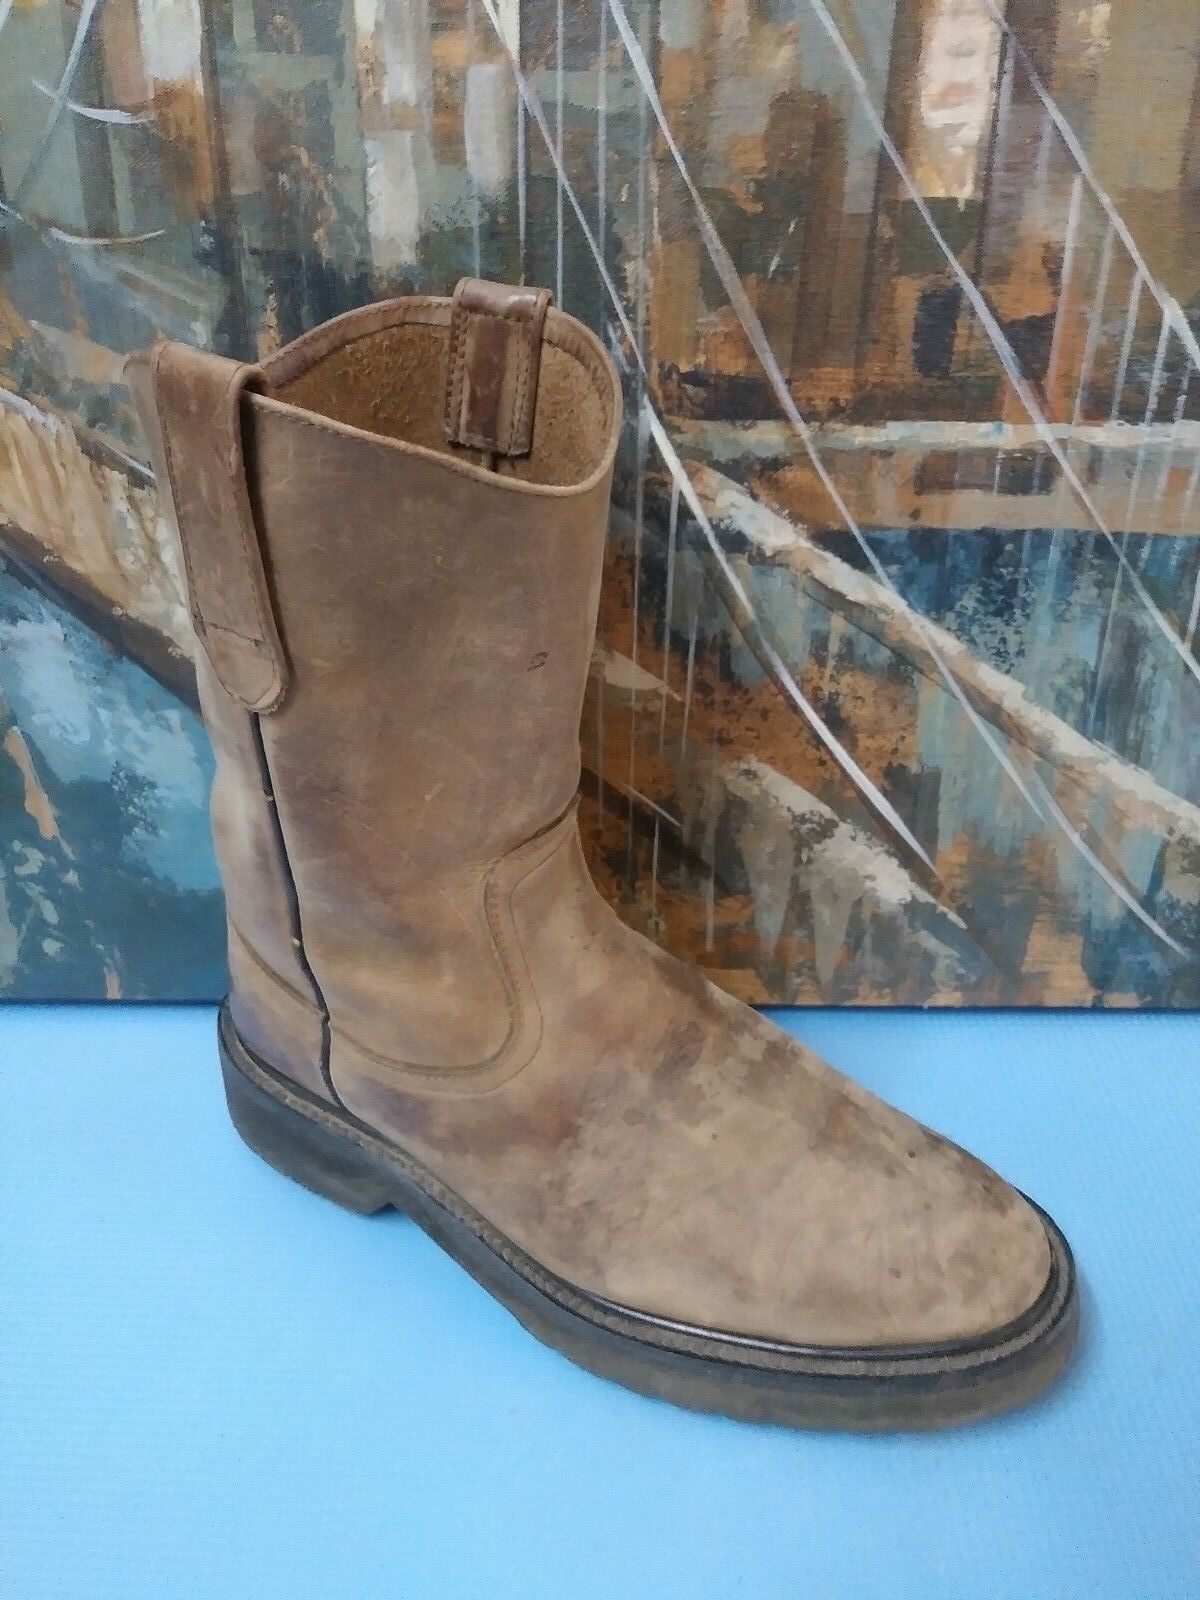 Man's/Woman's Galexico boots 5001 size 7 BROWN flagship store stable quality renewed on time